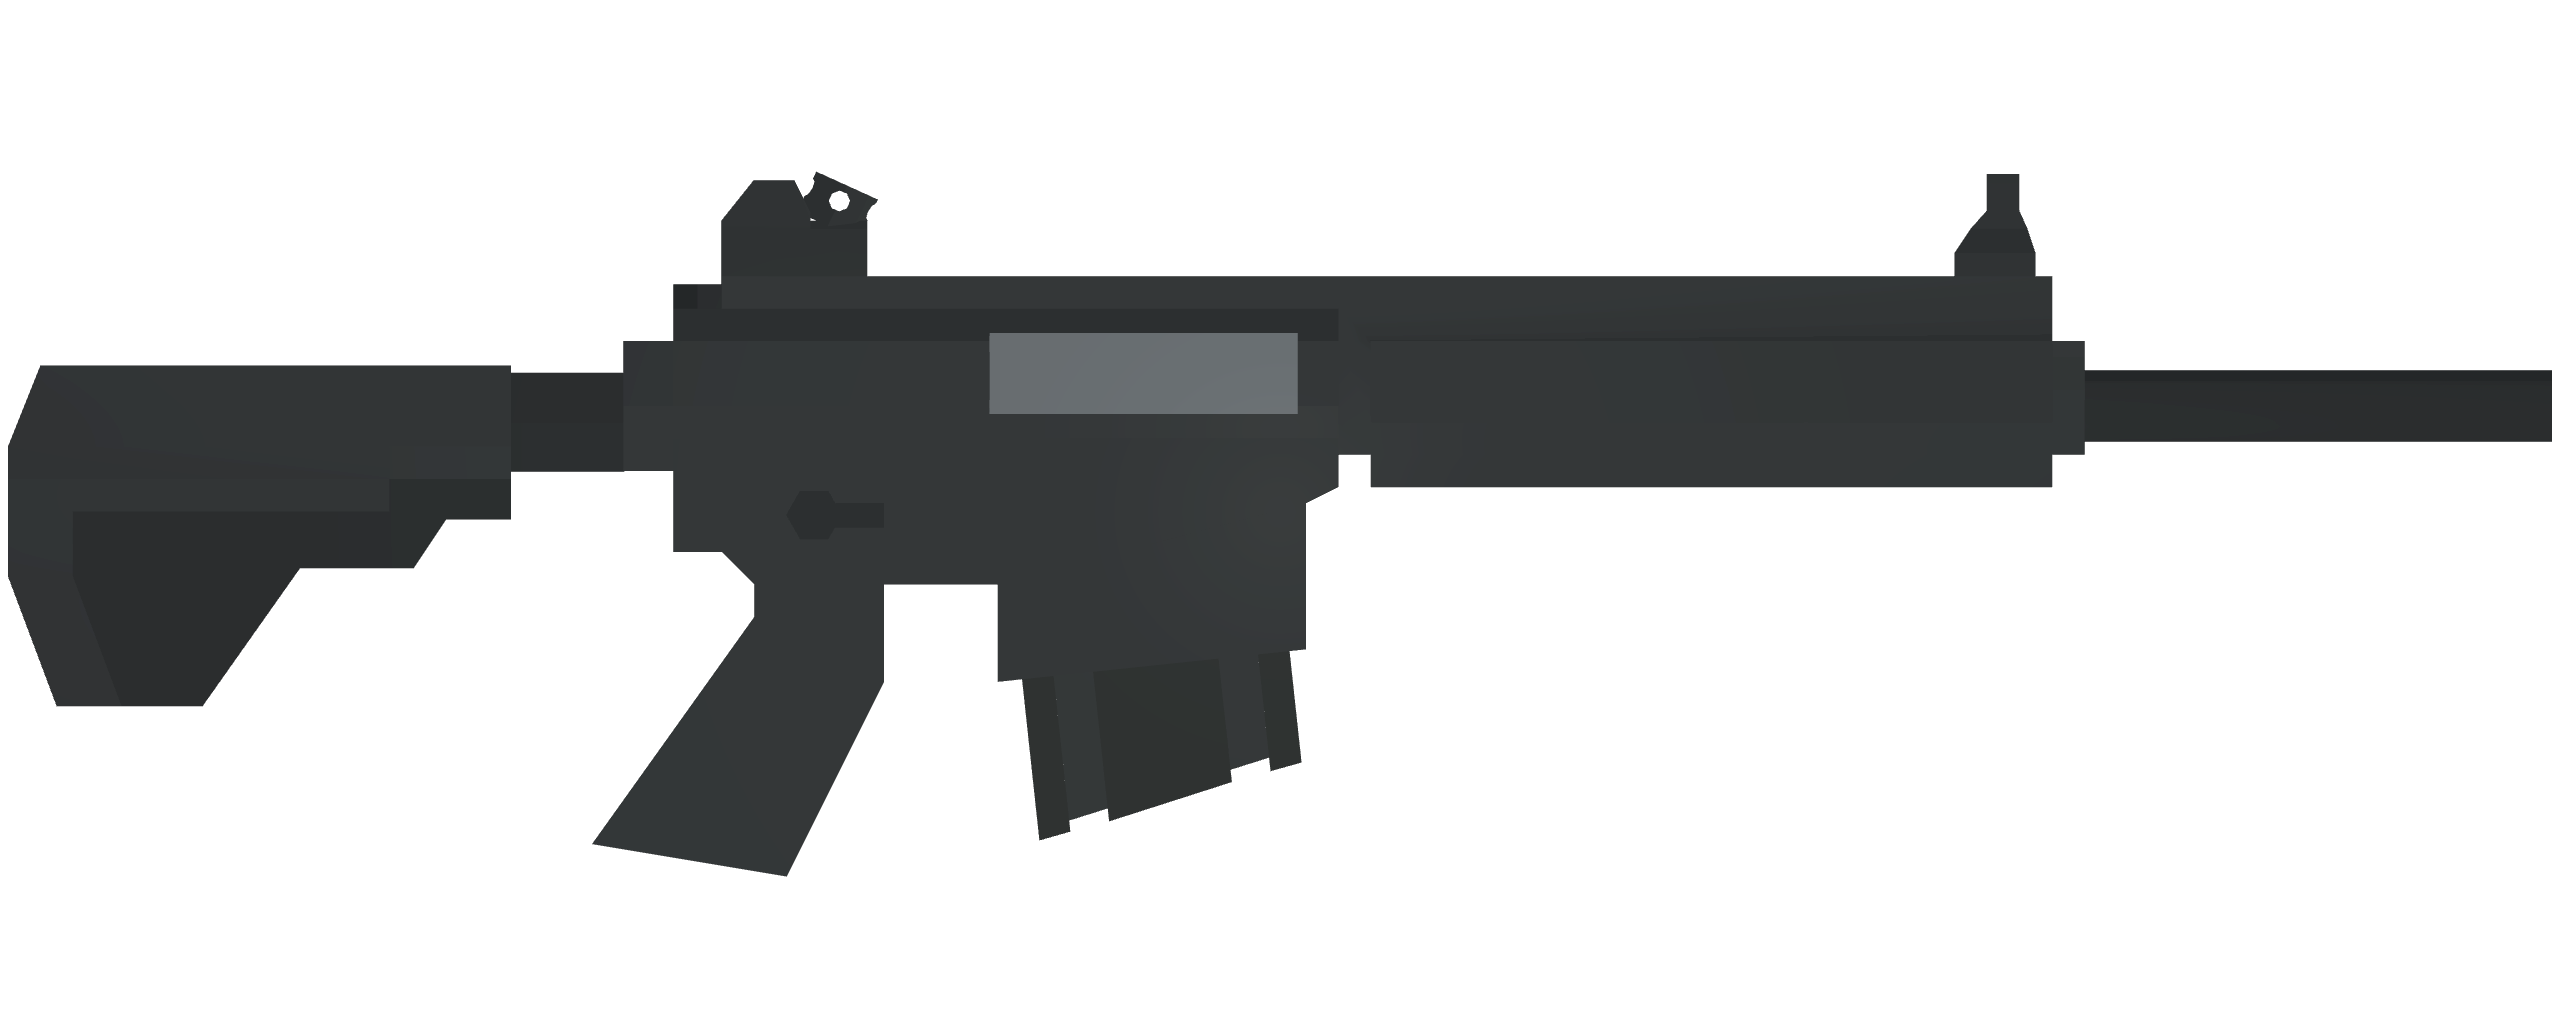 Unturned Uncreated Warfare Mods & All ID List + Attachments - Neutral Weapons - 48C6E4C